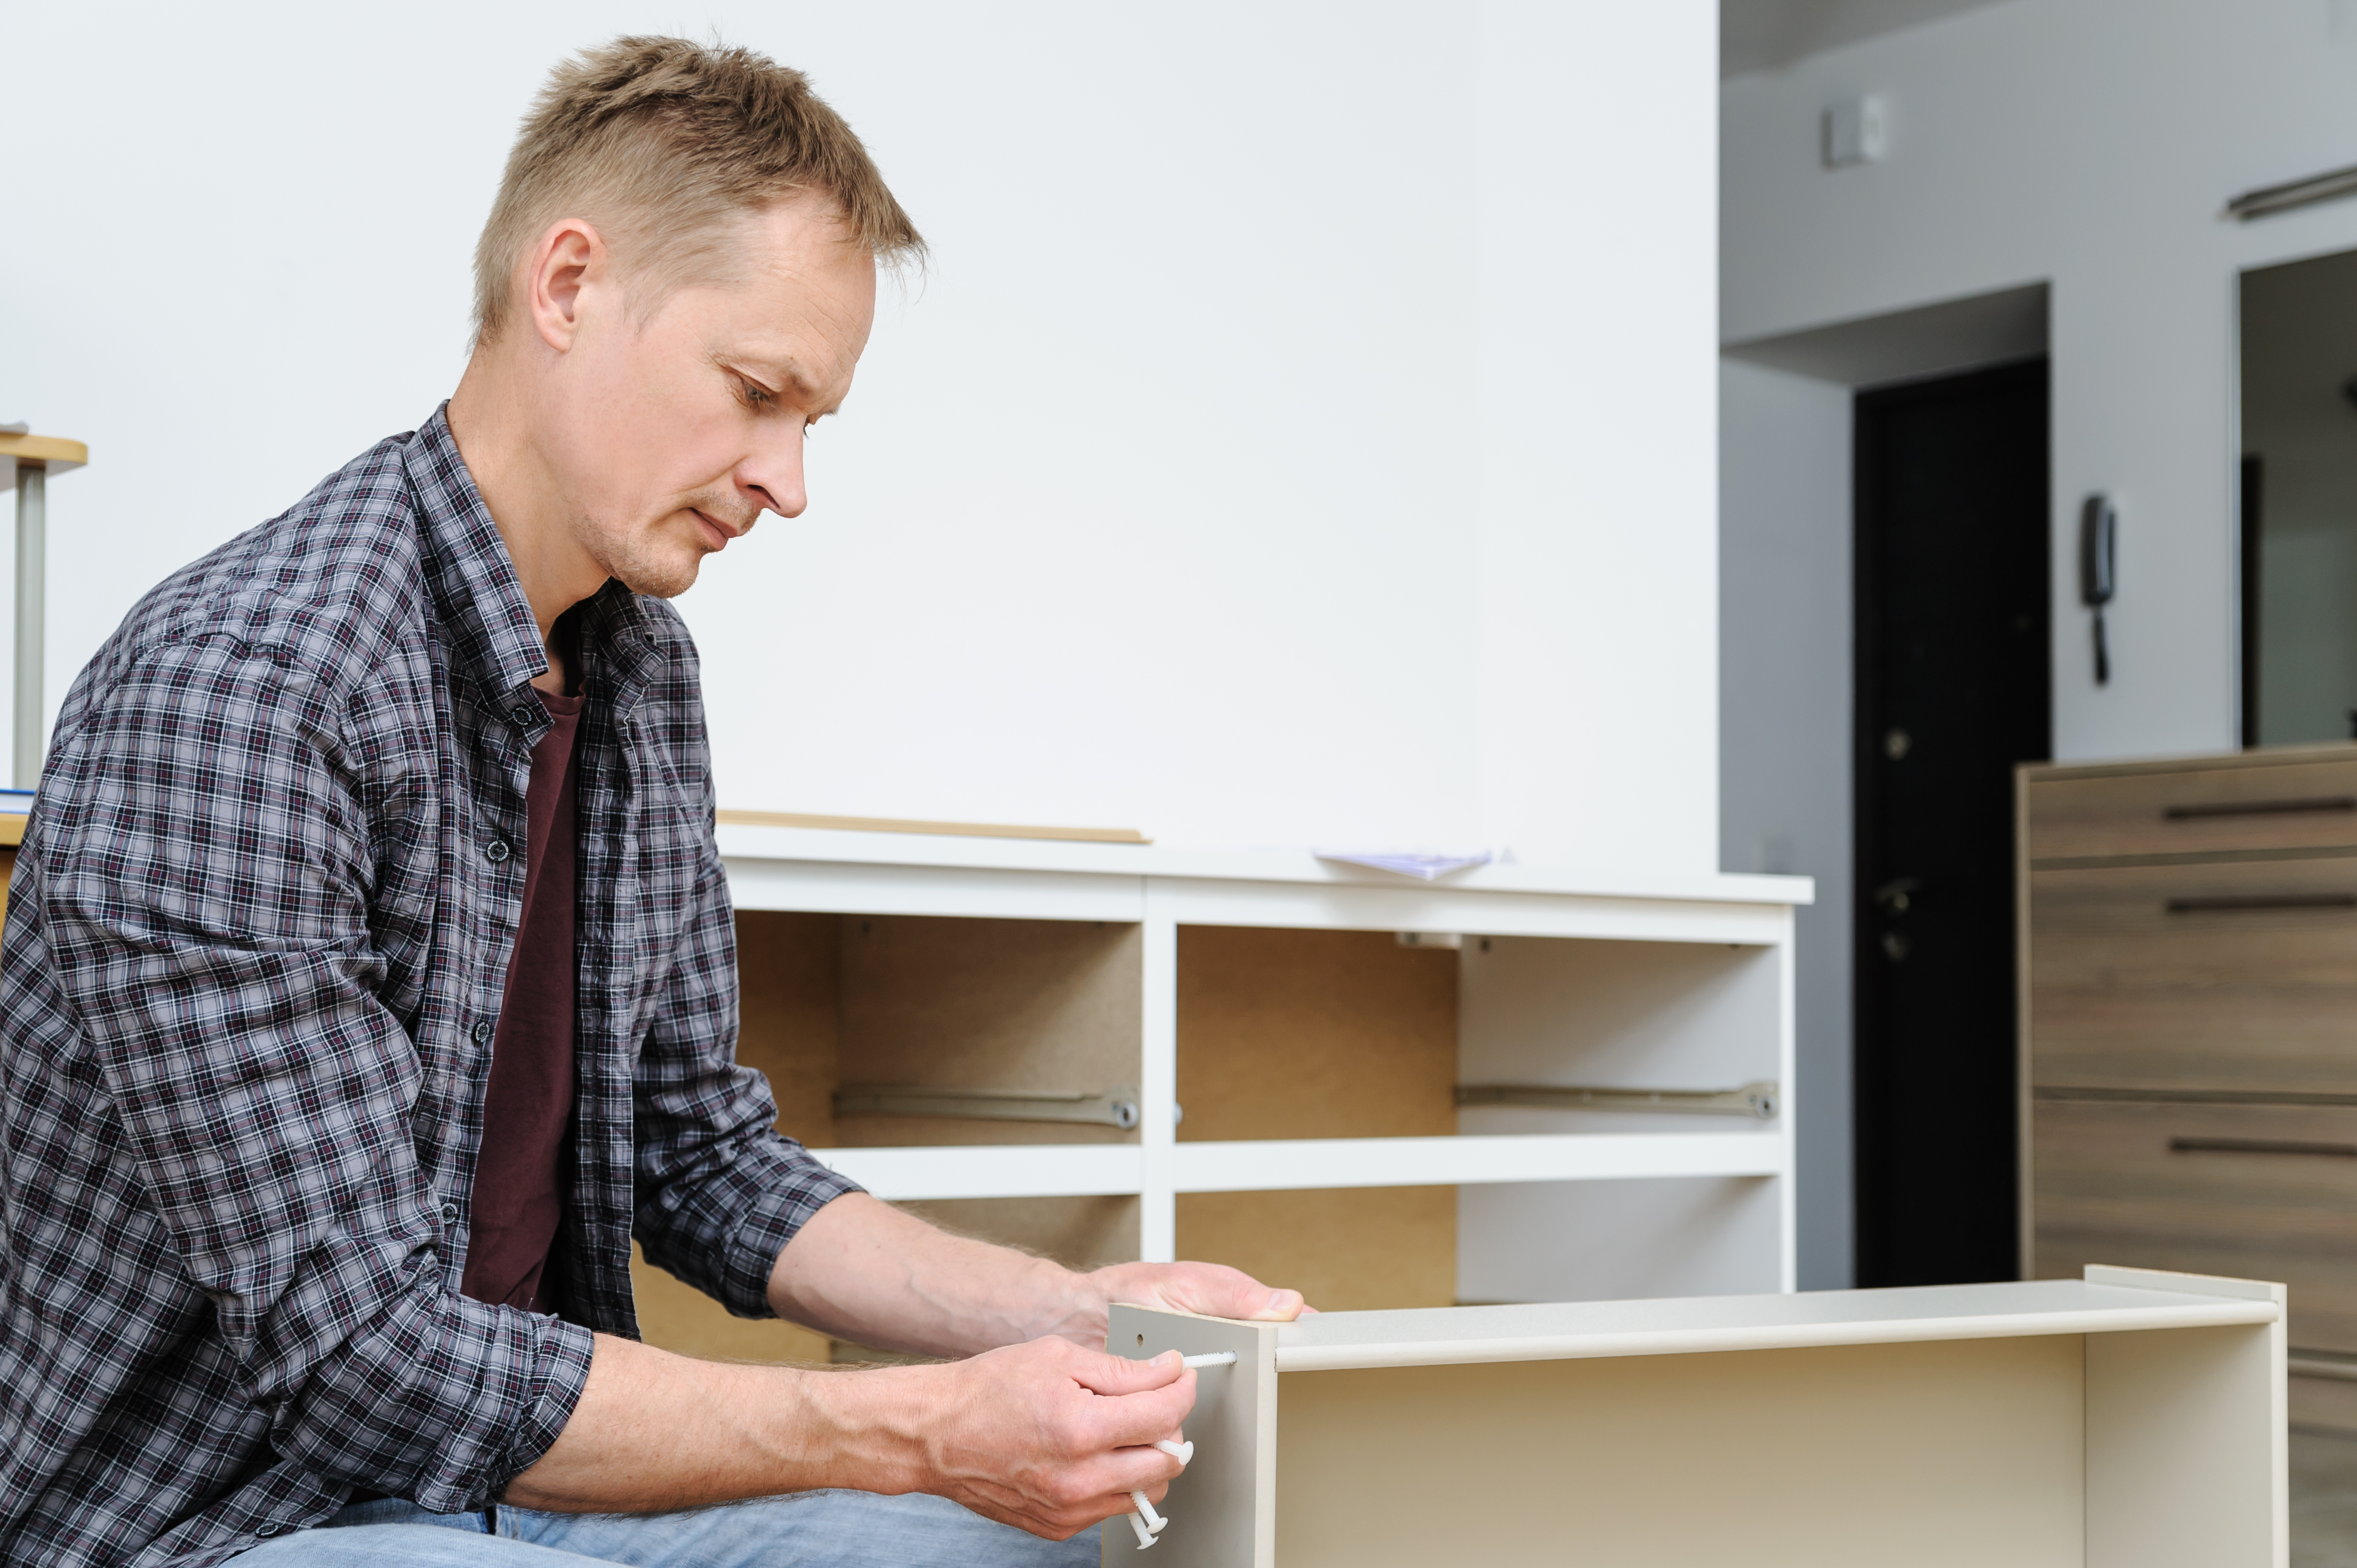 How To Fix Dresser Drawers That Fall Off Track Home Guides Sf Gate